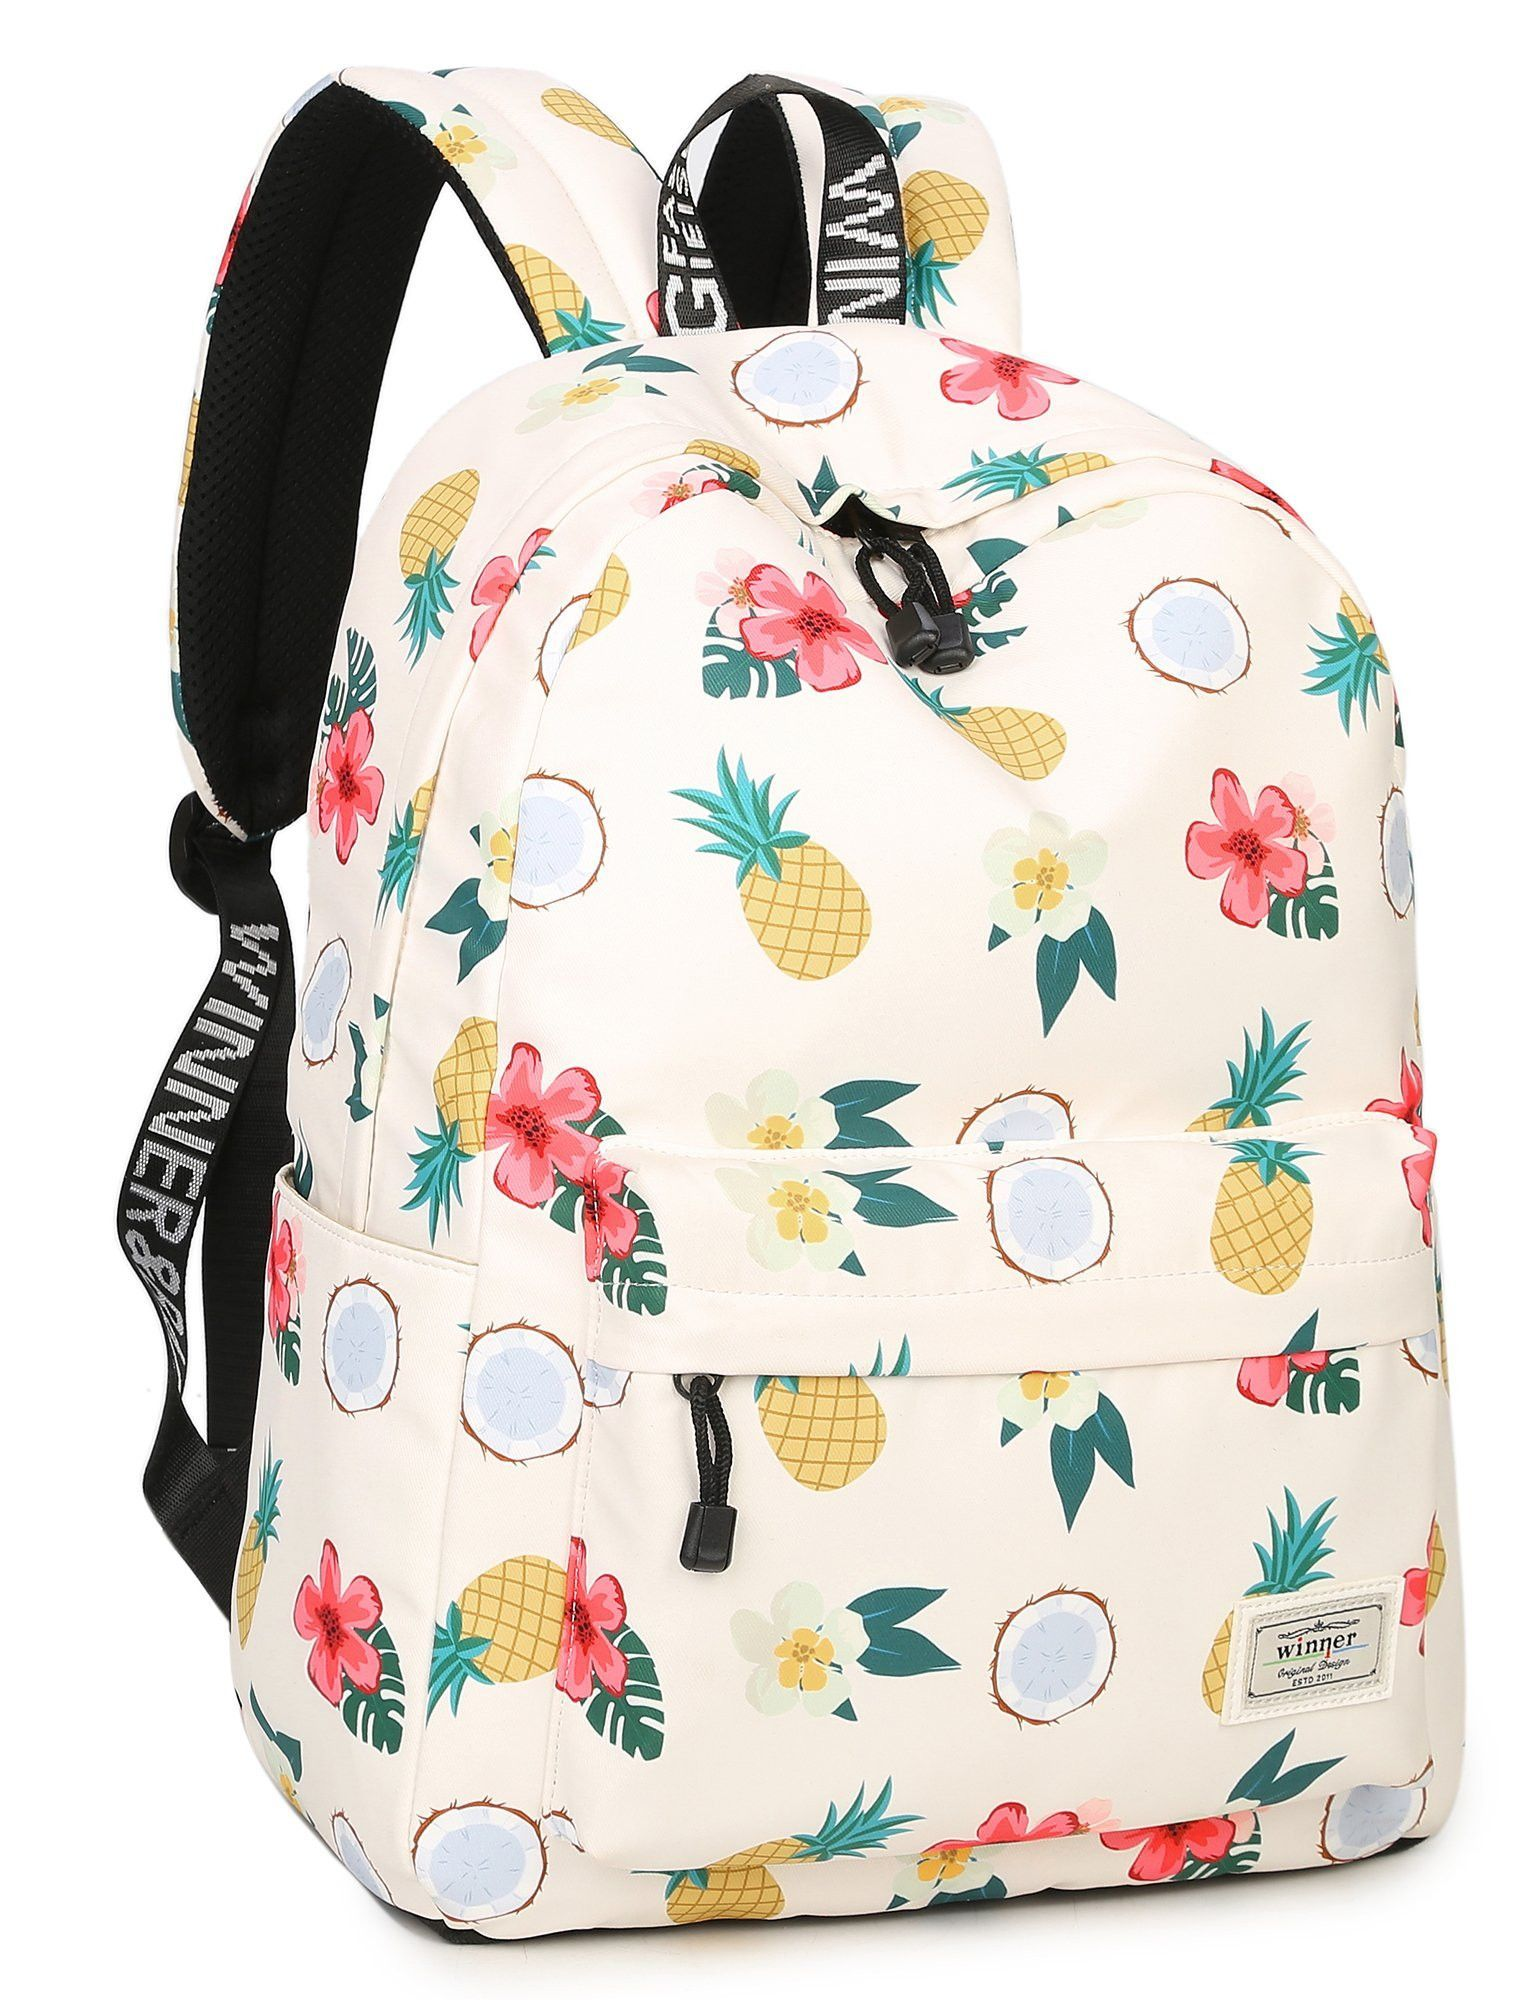 cac84cf8af5b School Bookbags for Girls Floral Pineapple Printed Backpack College Bags  Women Daypack by Leaper